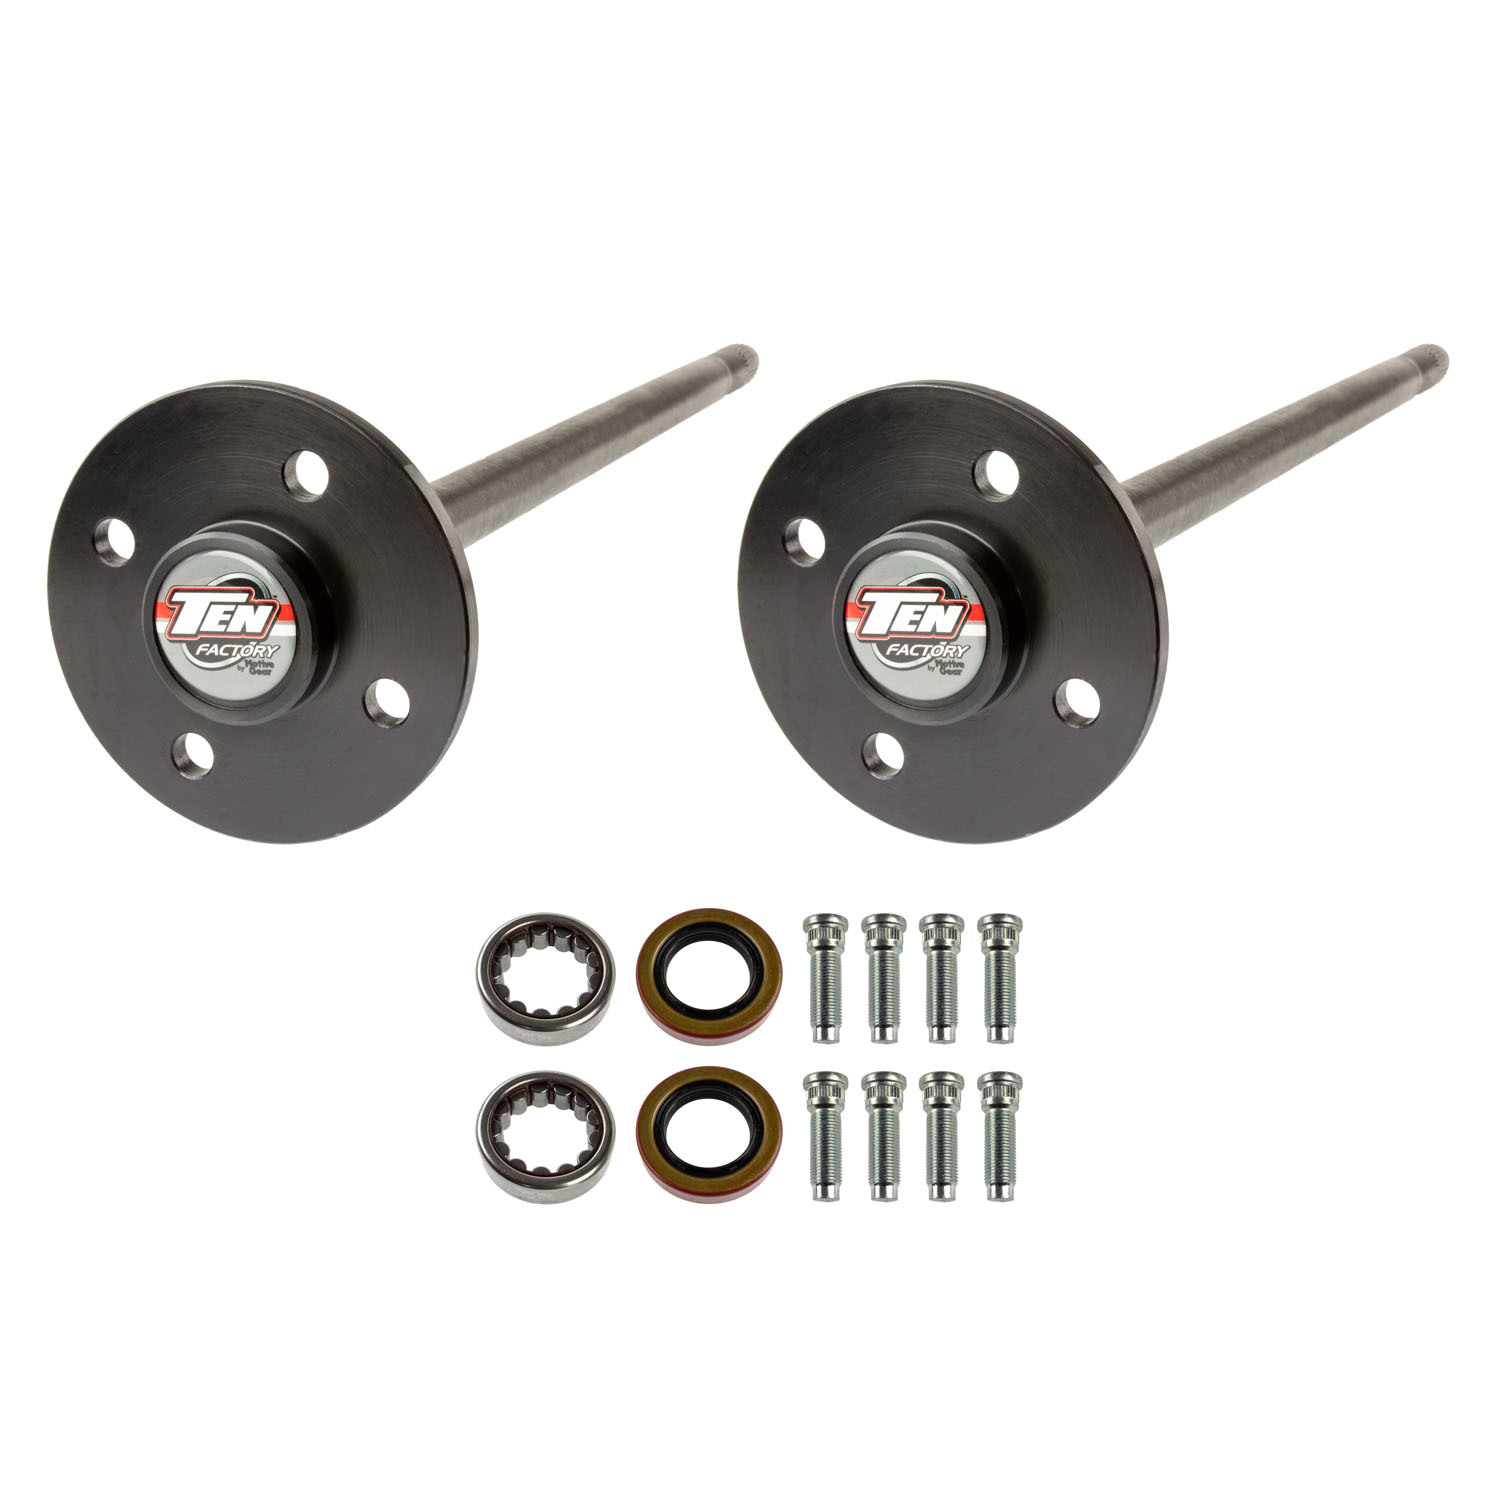 79-93 Mustang Axle Kit 8.8 28 Spl 29in 4x4.5